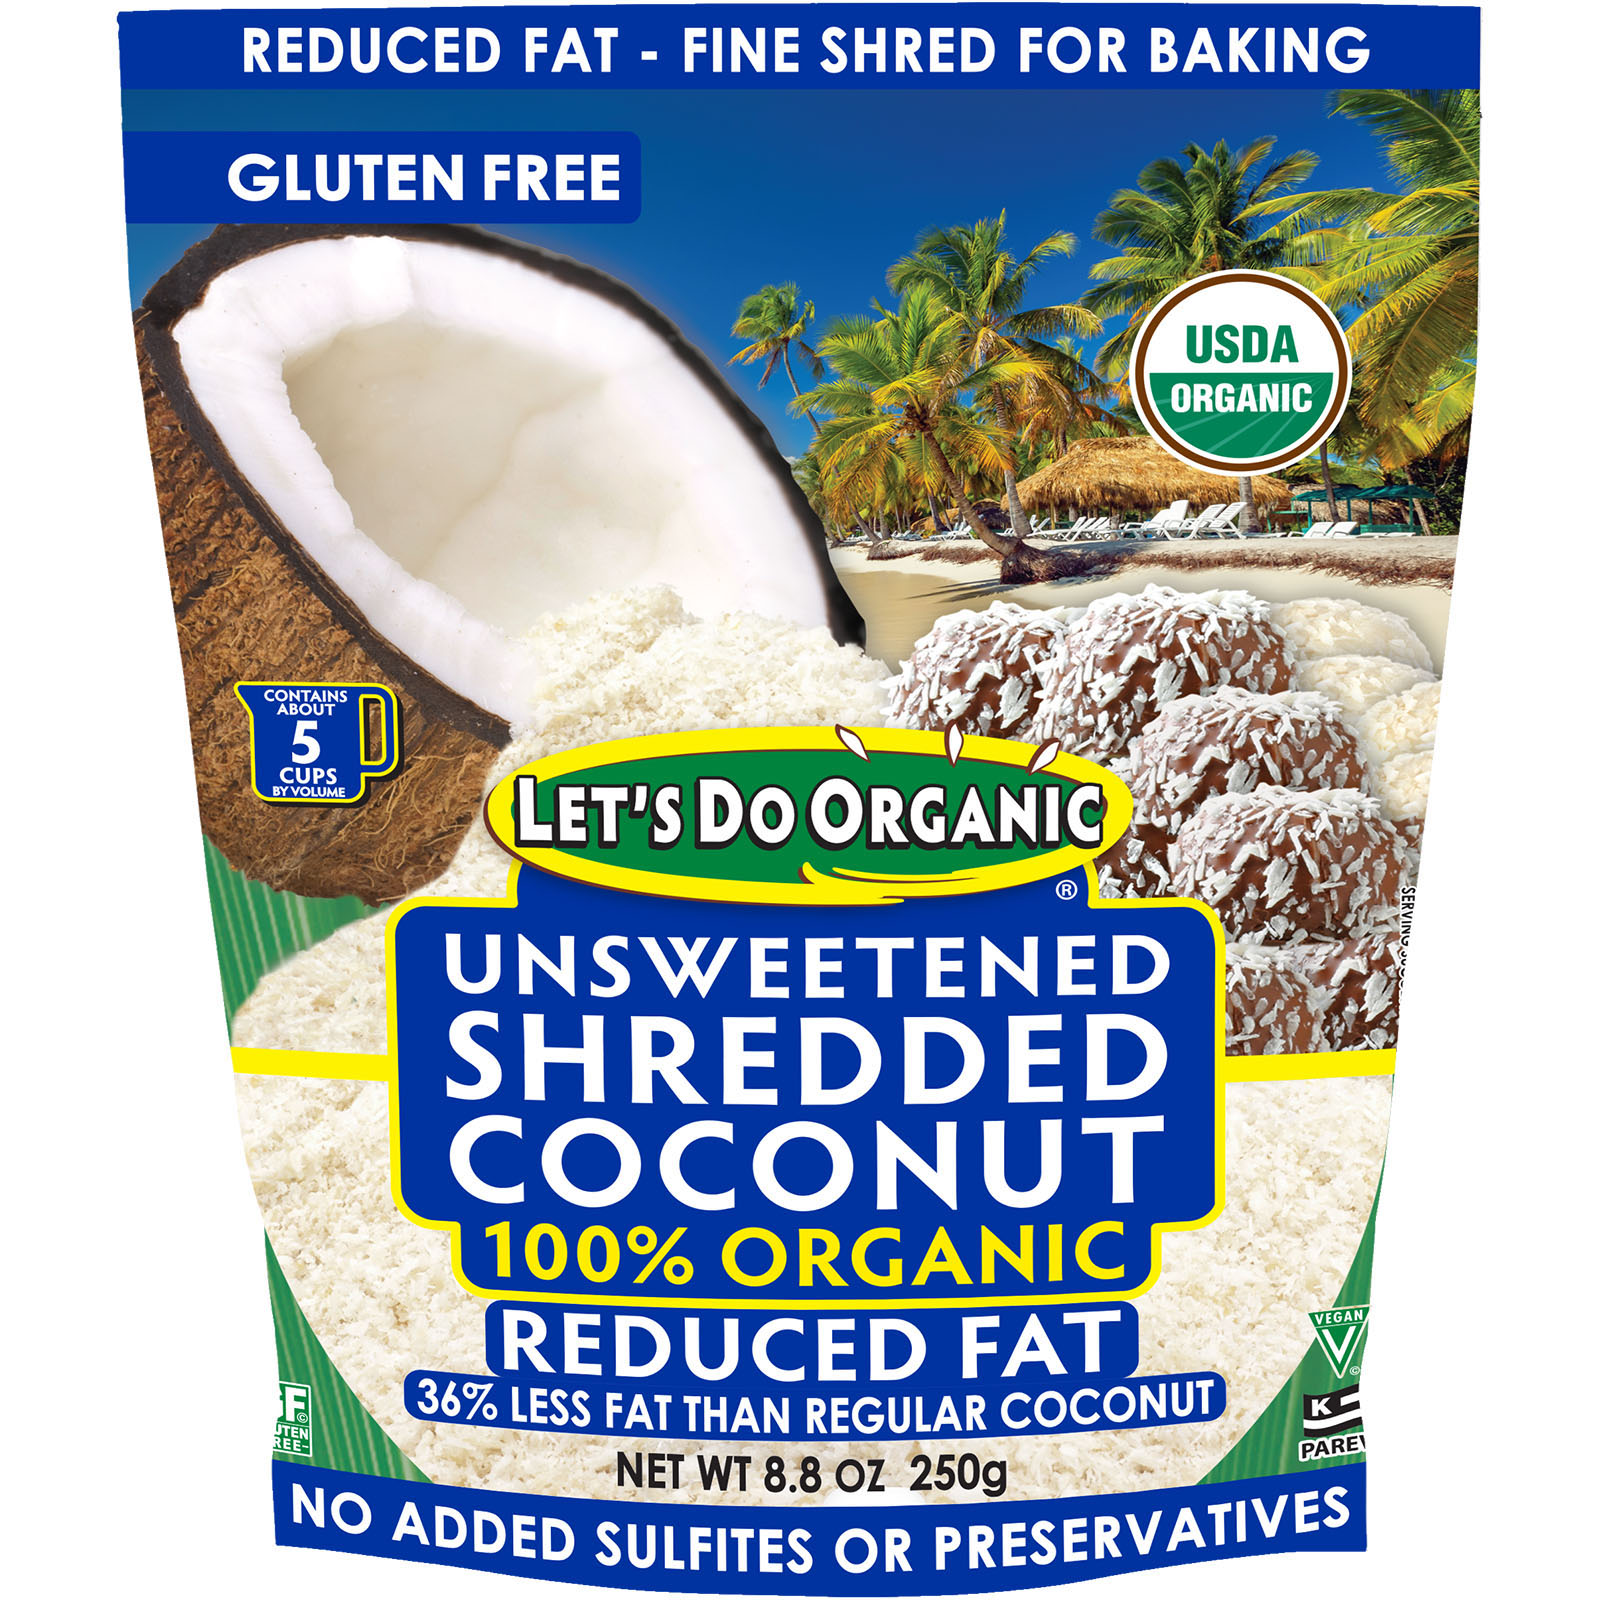 LET'S DO ORGANIC - UNSWEETENED SHREDDED COCONUT 100% ORGANIC - 8.8oz